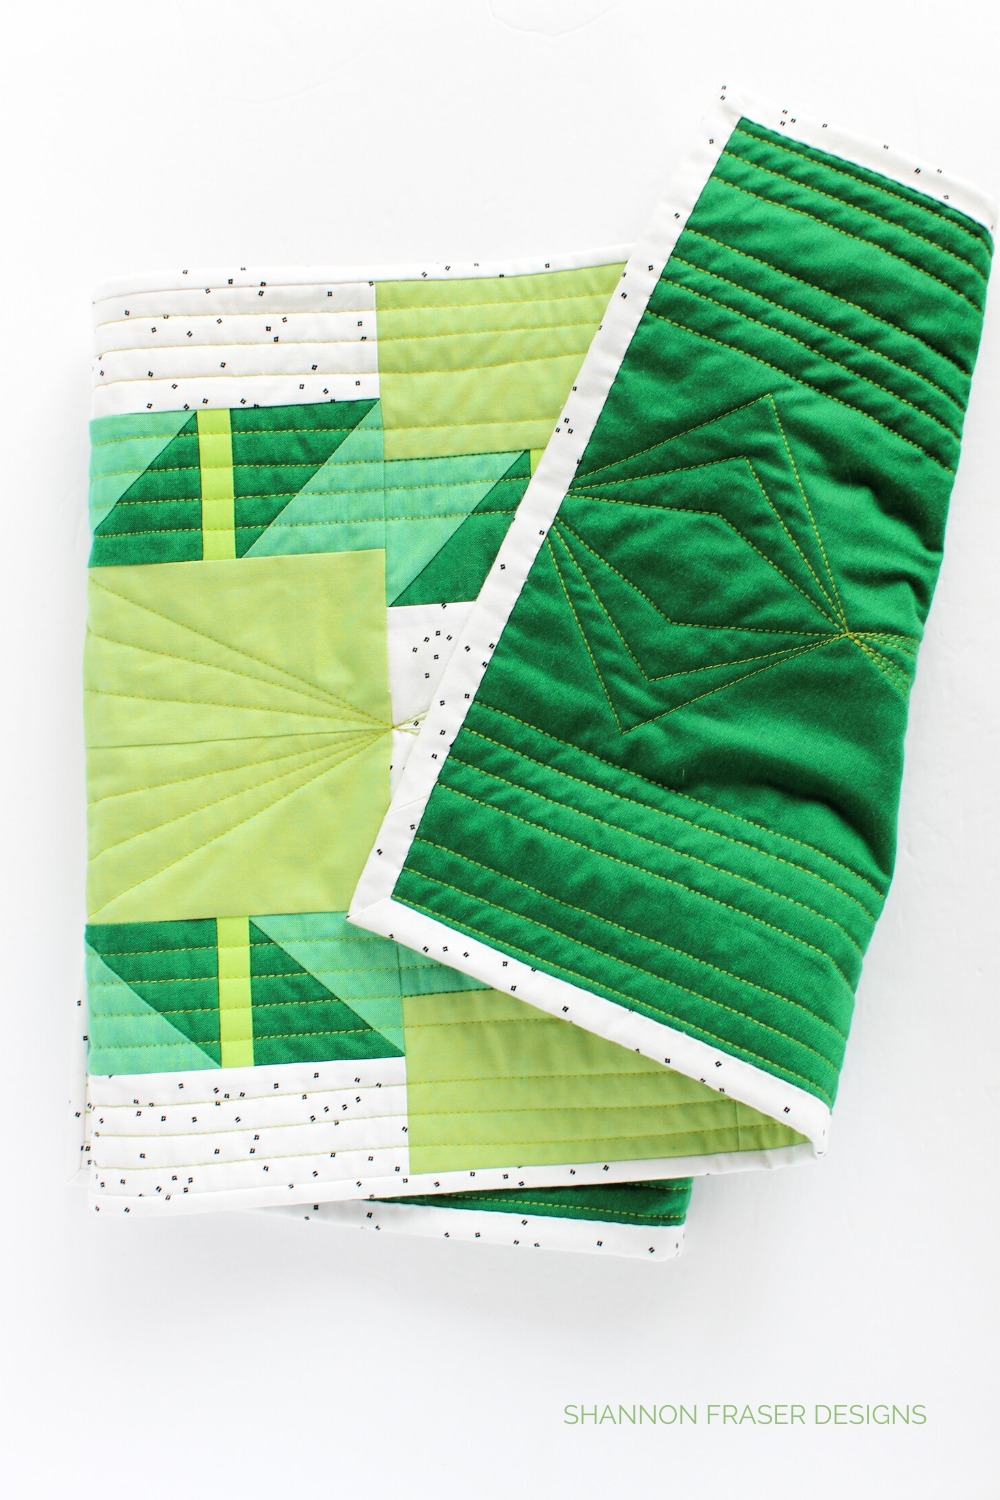 Quilting detail on the back of the green ombré Shattered Star quilted table runner featuring 28wt Aurifil Thread | Modern quilt pattern |  Shannon Fraser Designs #quilting